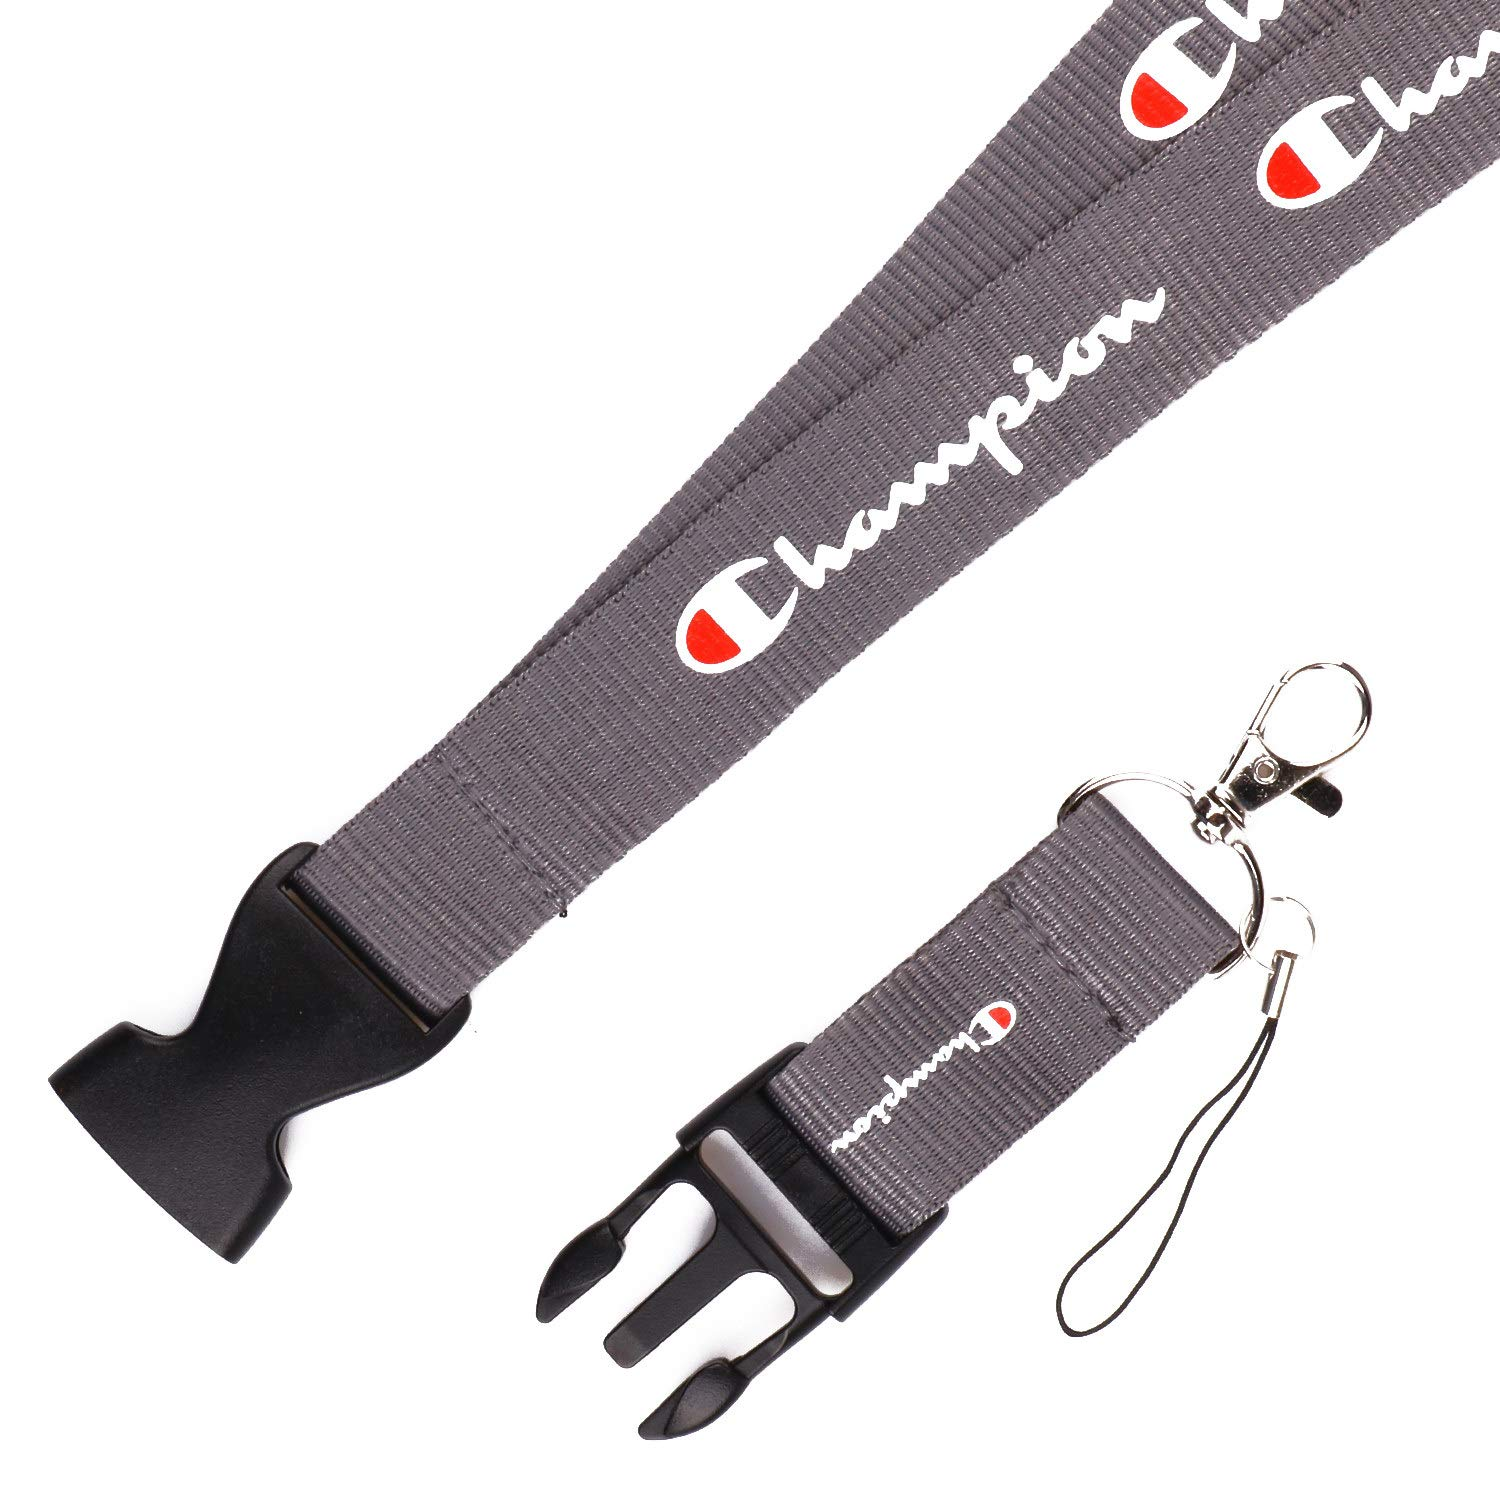 Amazon.com: Lanyard - Lote de 3 correas de cuello para ...